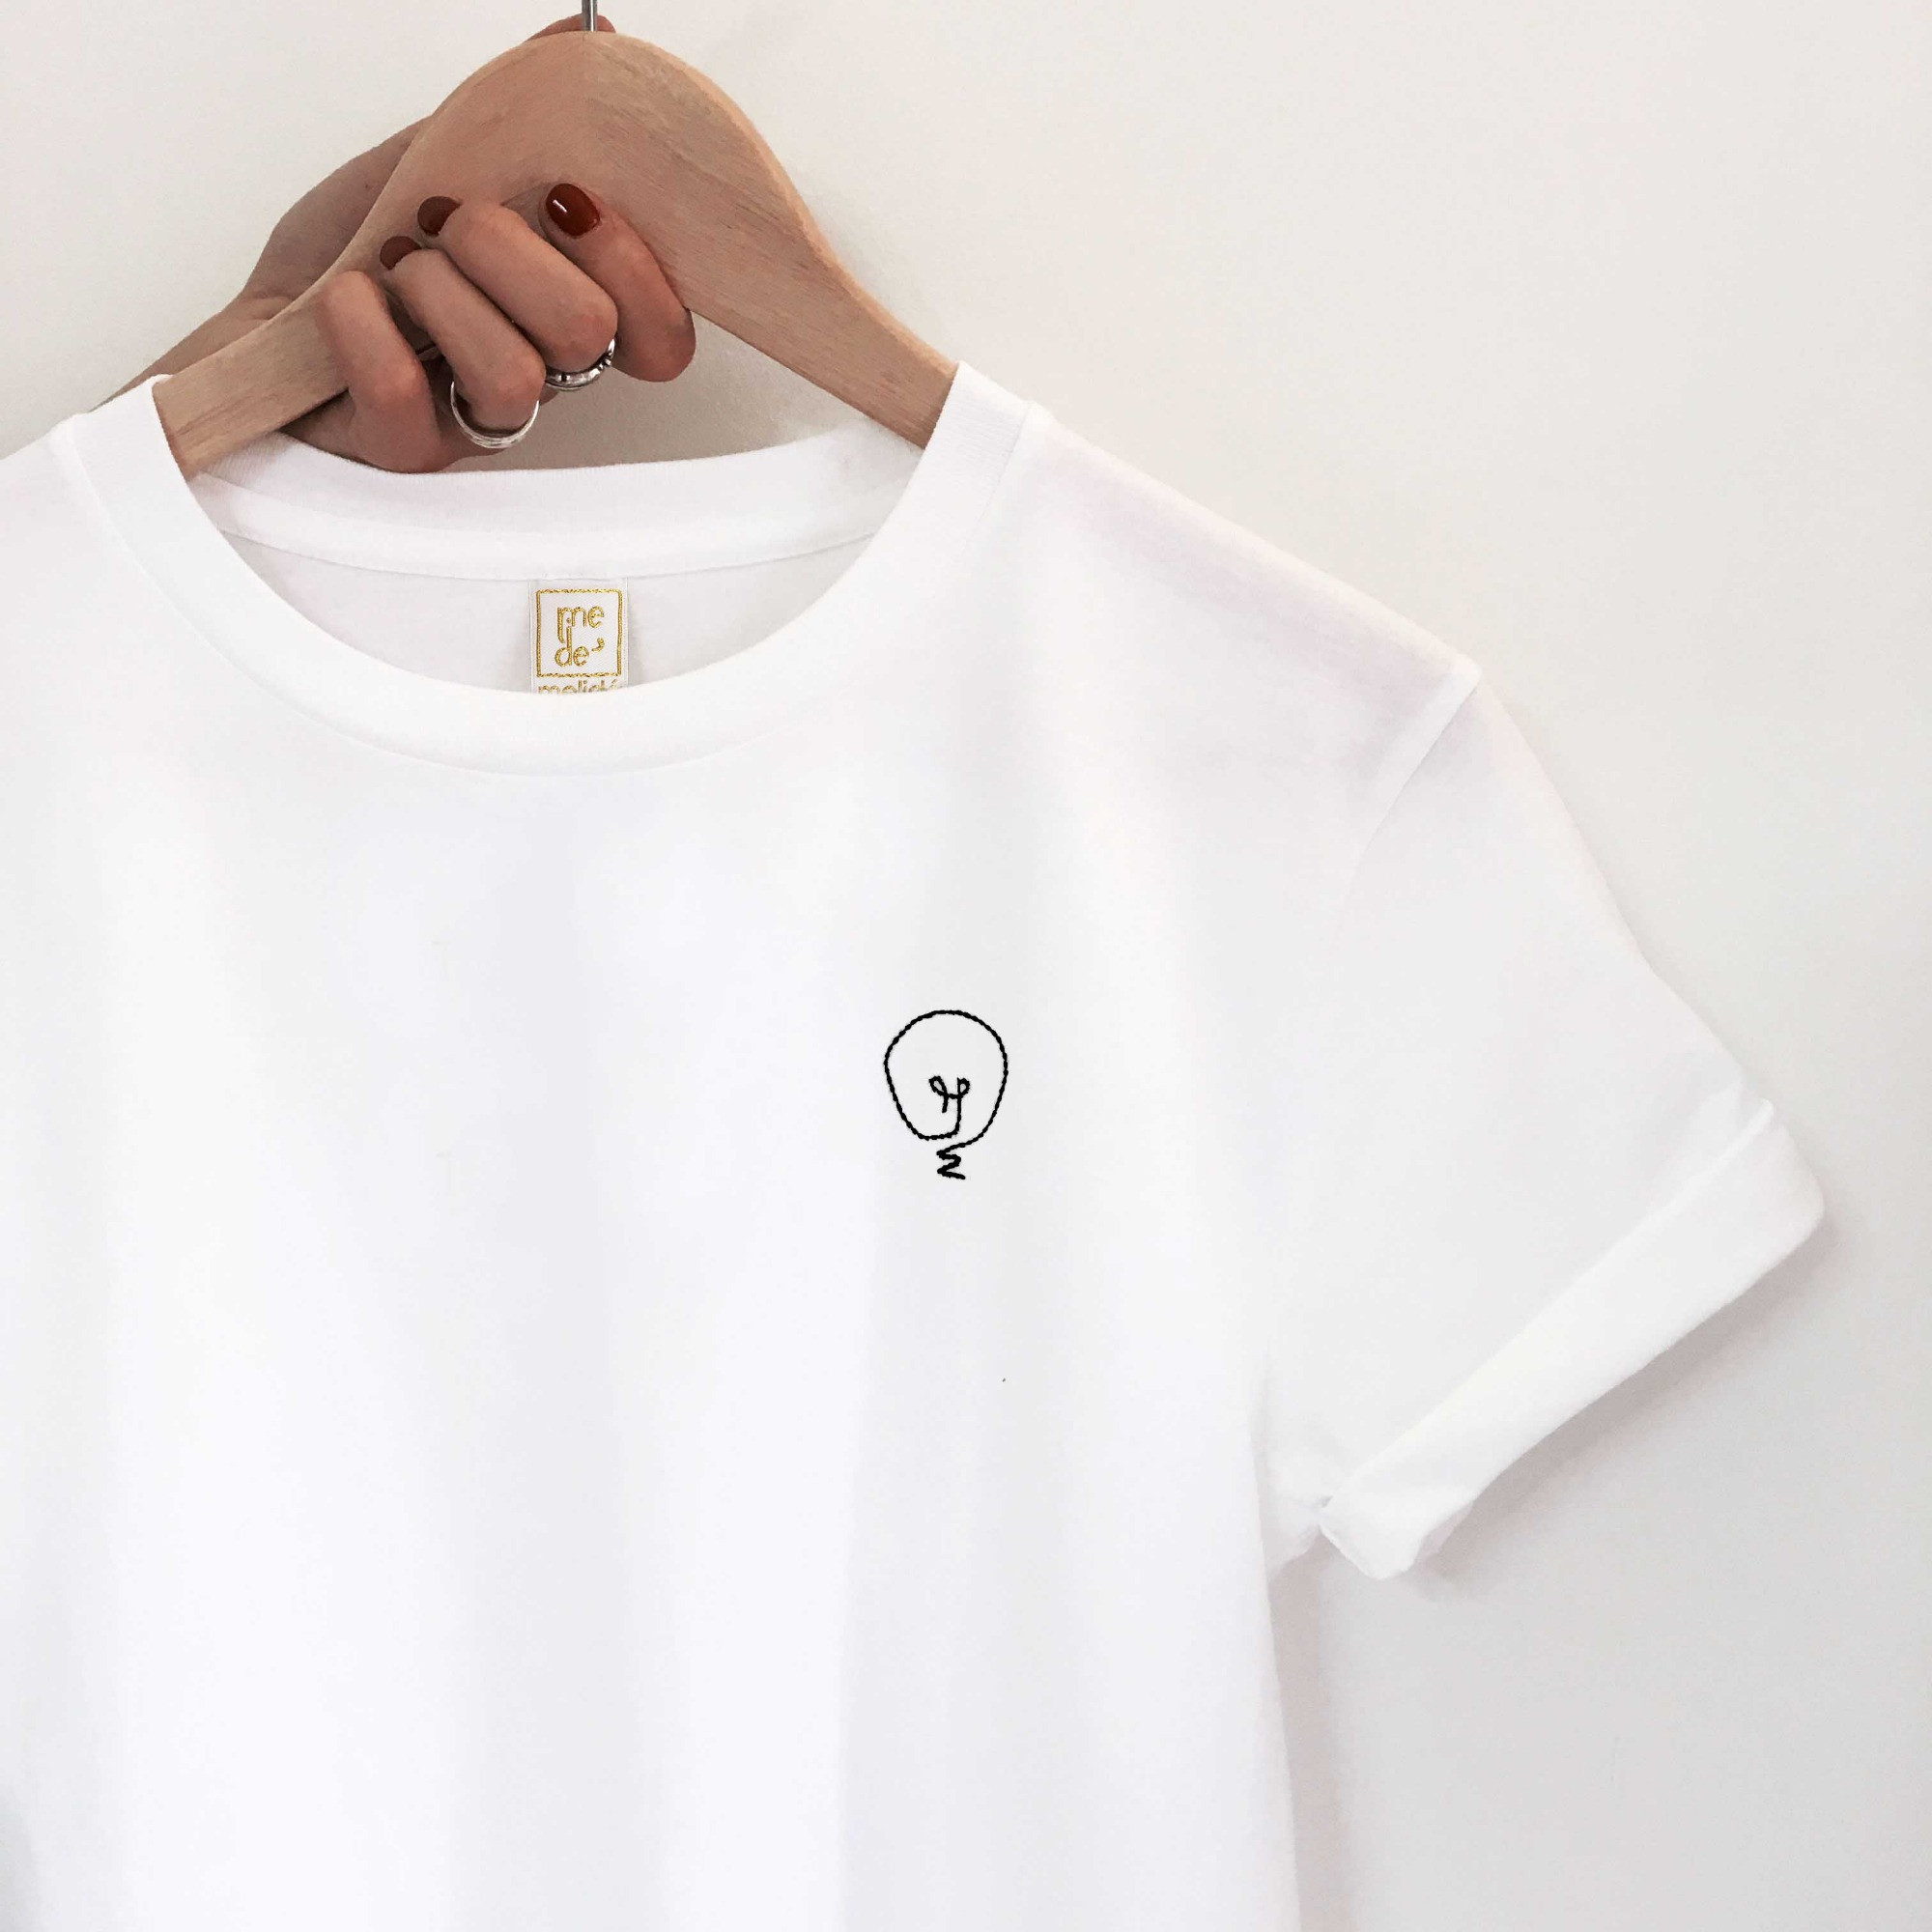 The LIGHT tee